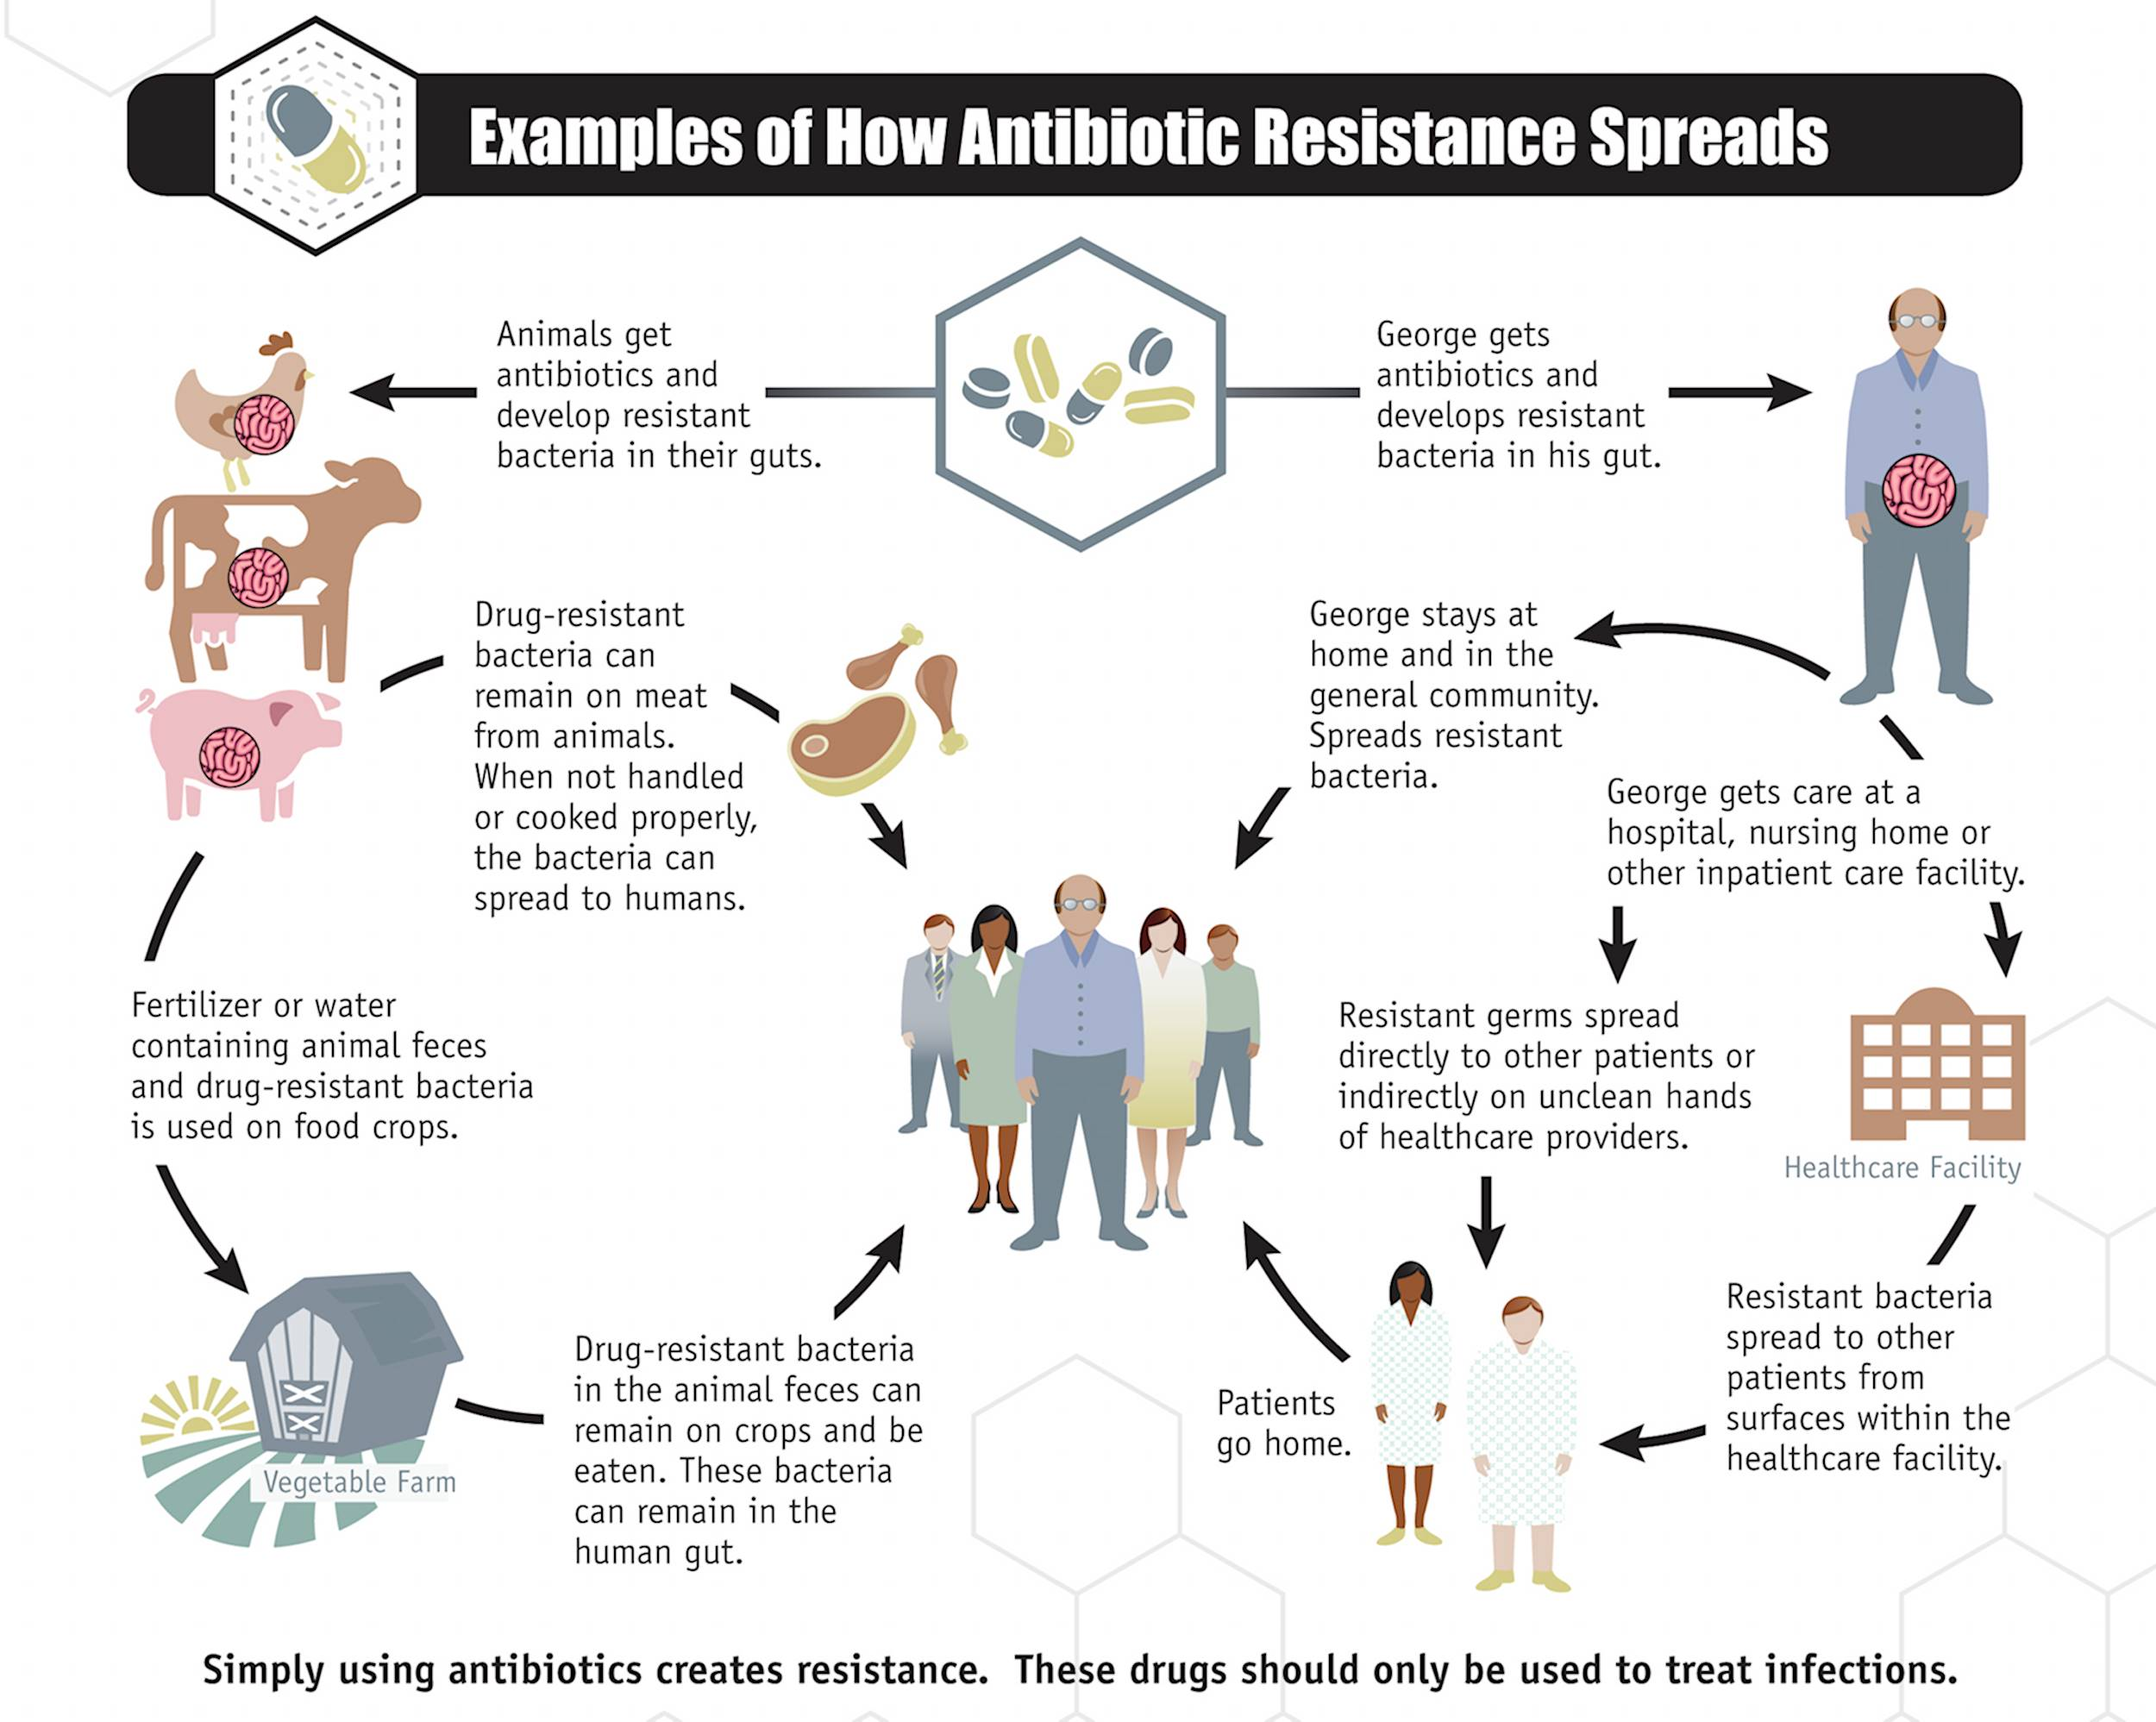 image courtesy of    CDC: Centers for Disease Control and Prevention